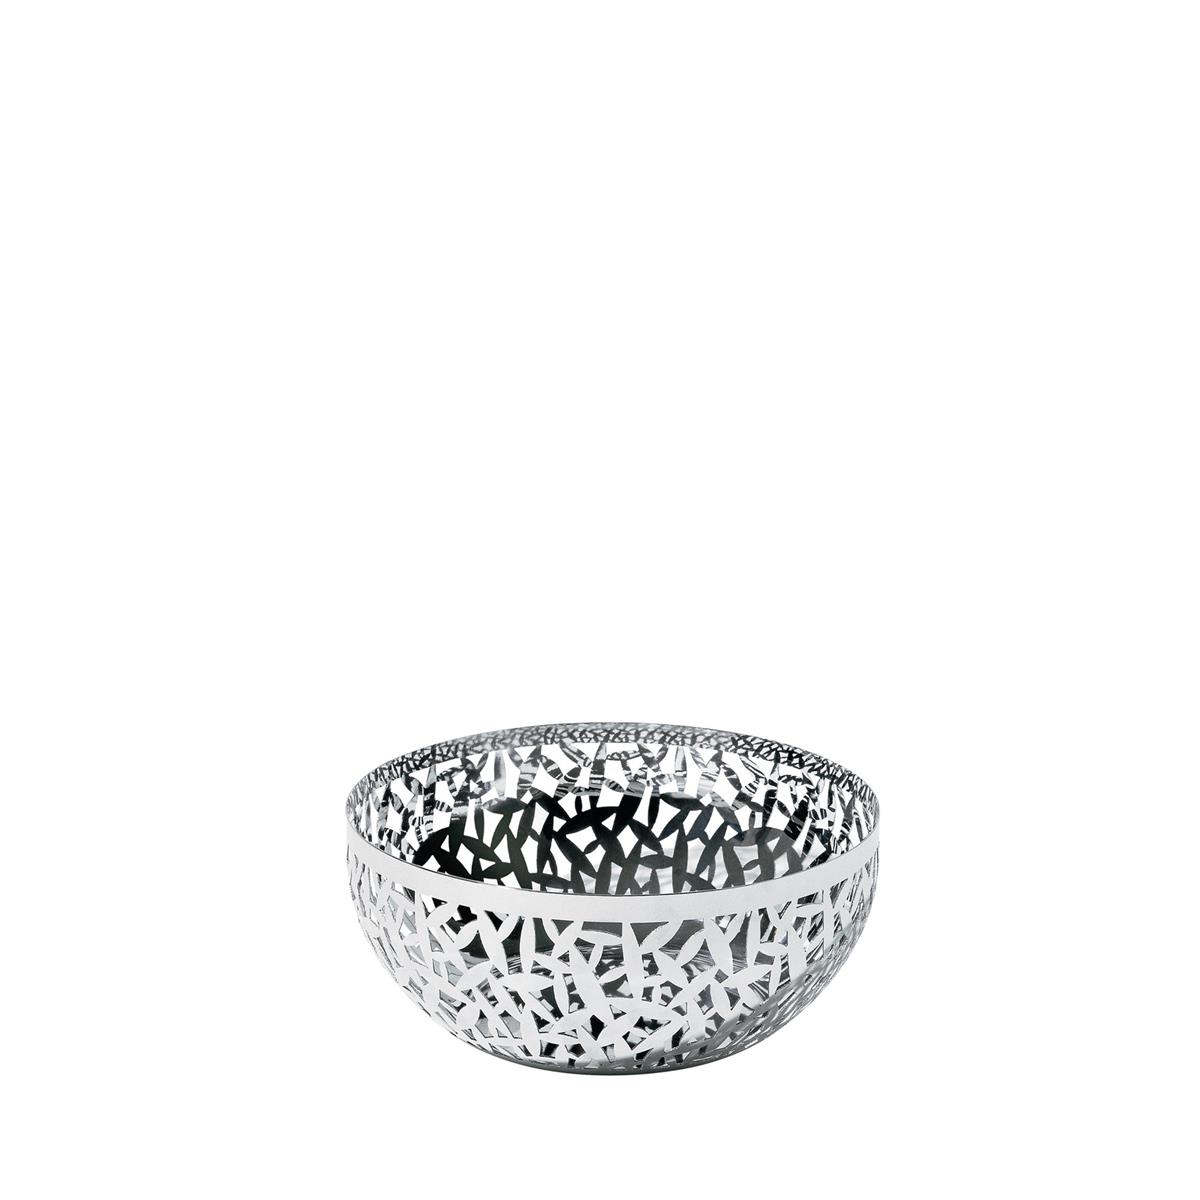 Alessi-CACTUS! 18/10 stainless steel perforated fruit bowl